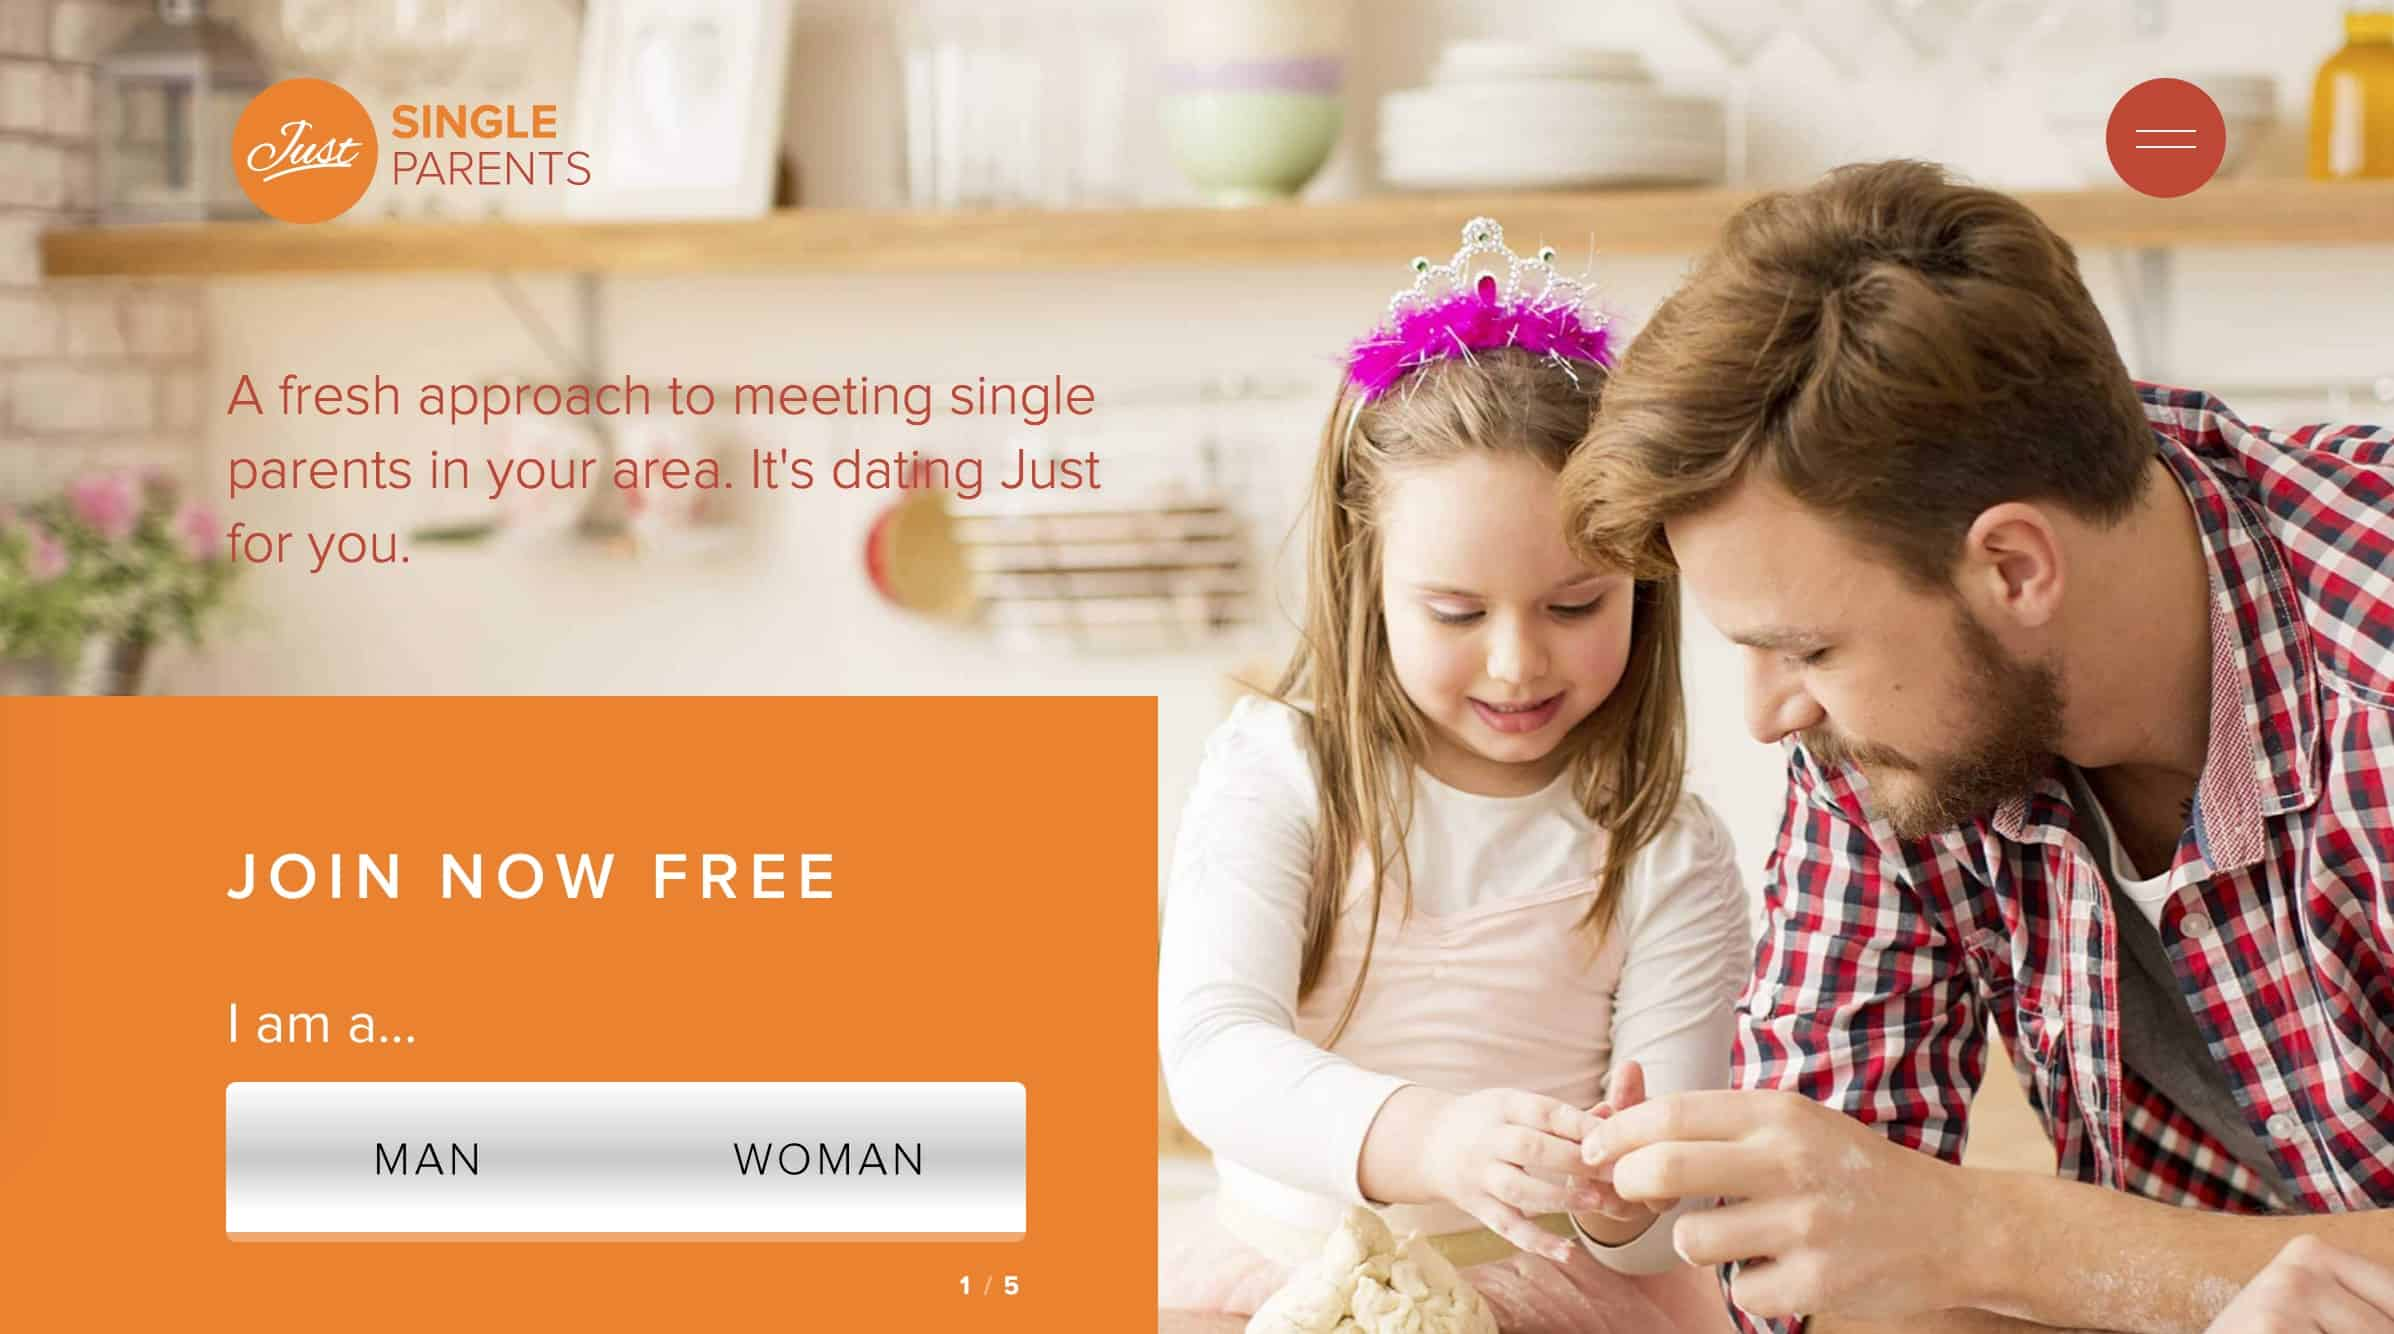 thompsontown single parent personals Mc clure's best 100% free dating site for single parents join our online community of pennsylvania single parents and meet people like you through our free mc clure single parent personal ads and online chat rooms.